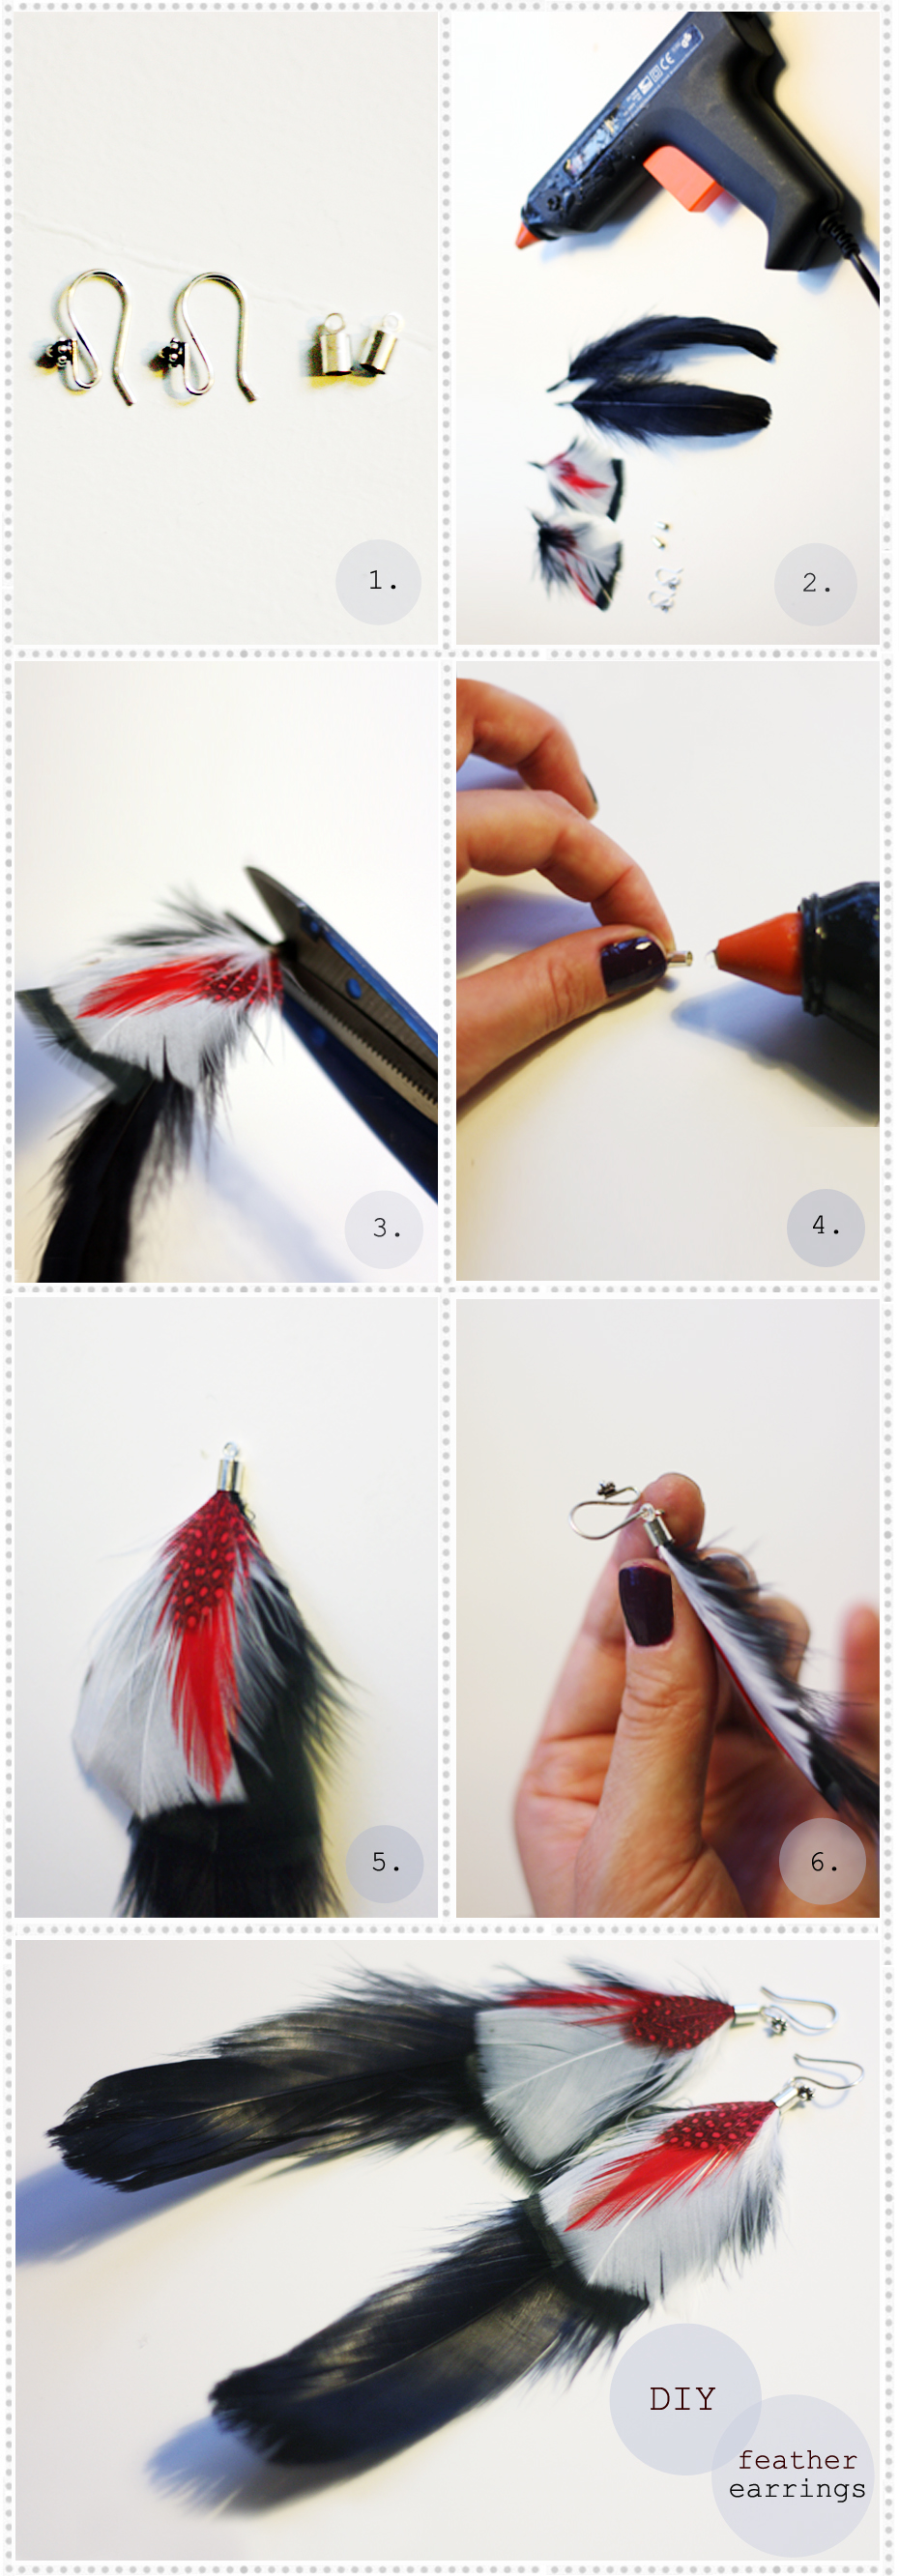 diy-feather-earrings.jpg